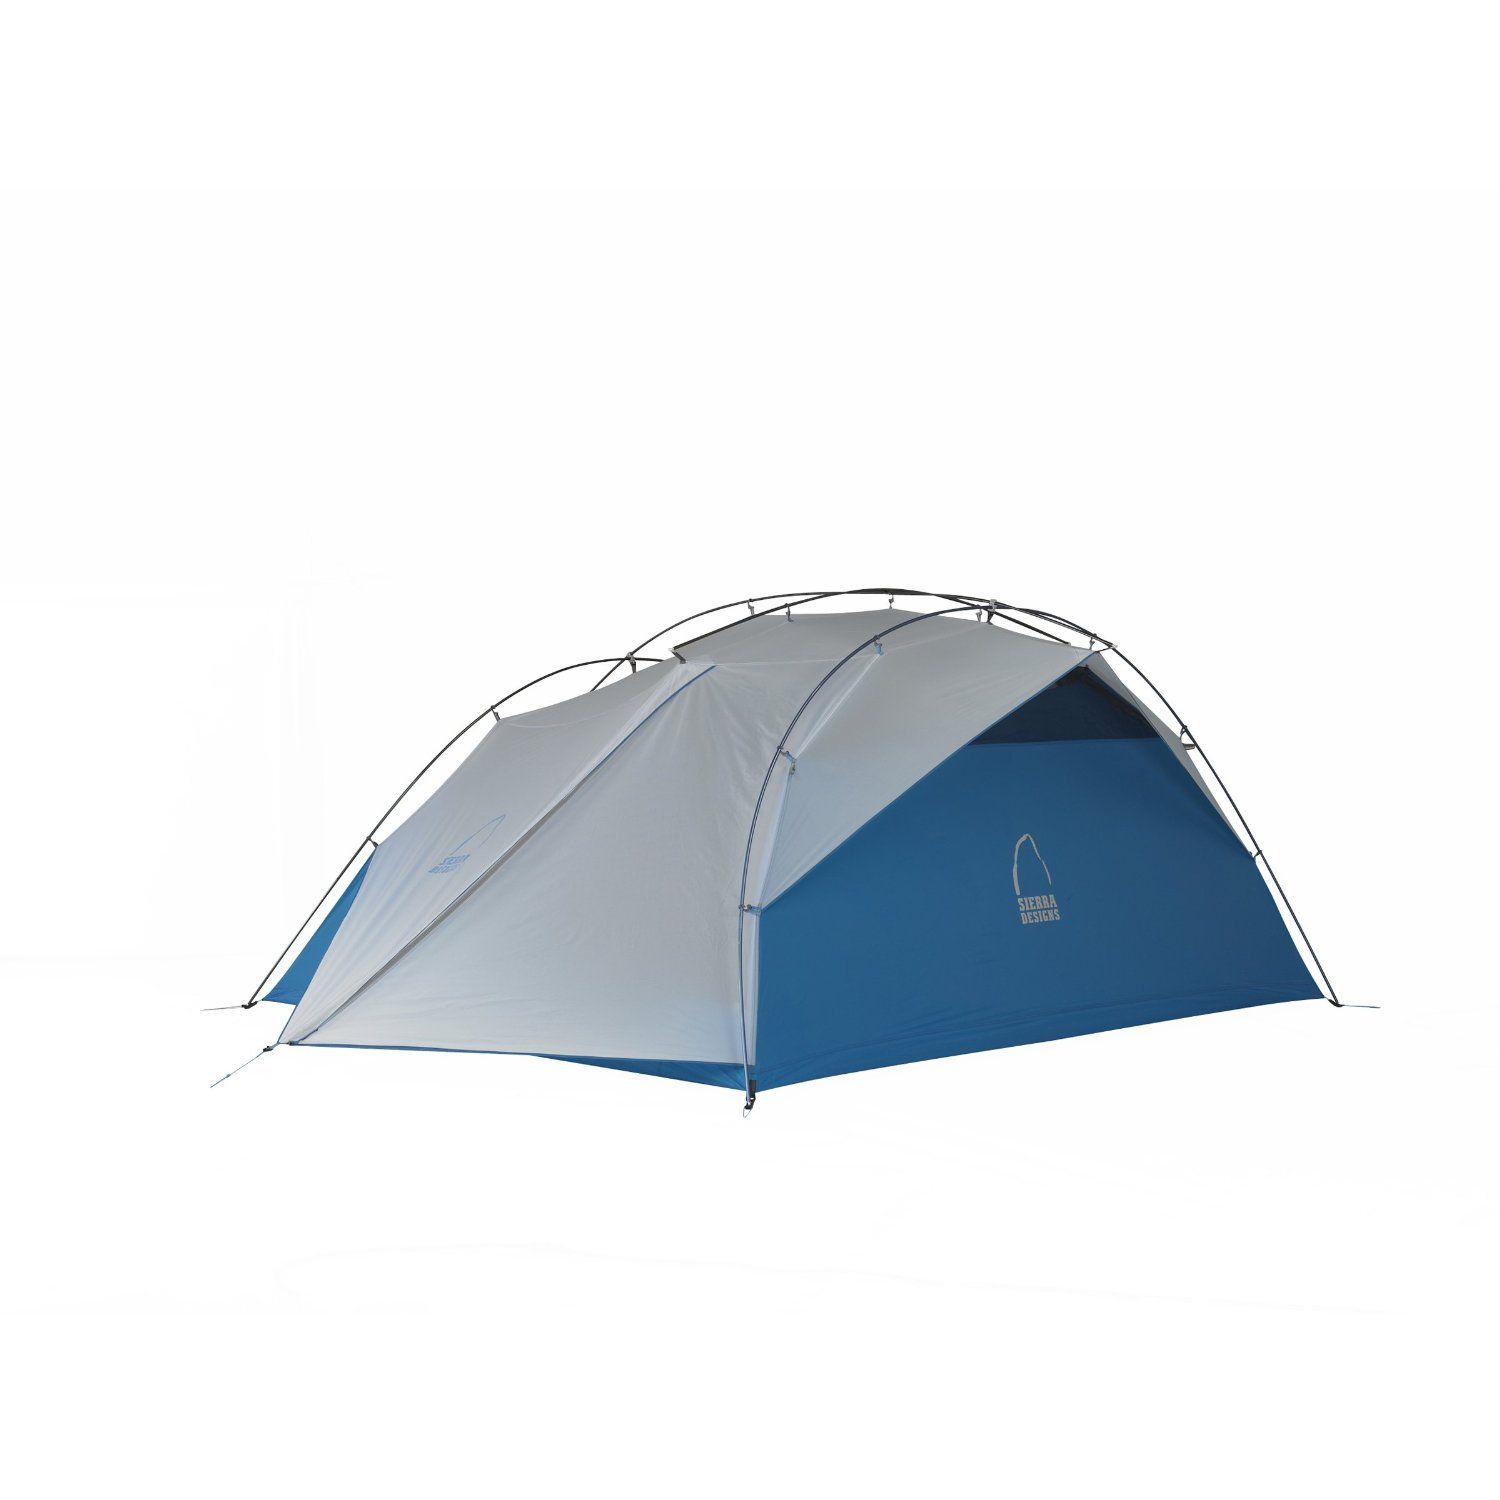 The Sierra Designs Flash Ultralight Backpacking tent is an award winning tent that offers top of the line features in comfort convenience performance ...  sc 1 st  Pinterest : sierra designs ultralight tent - memphite.com